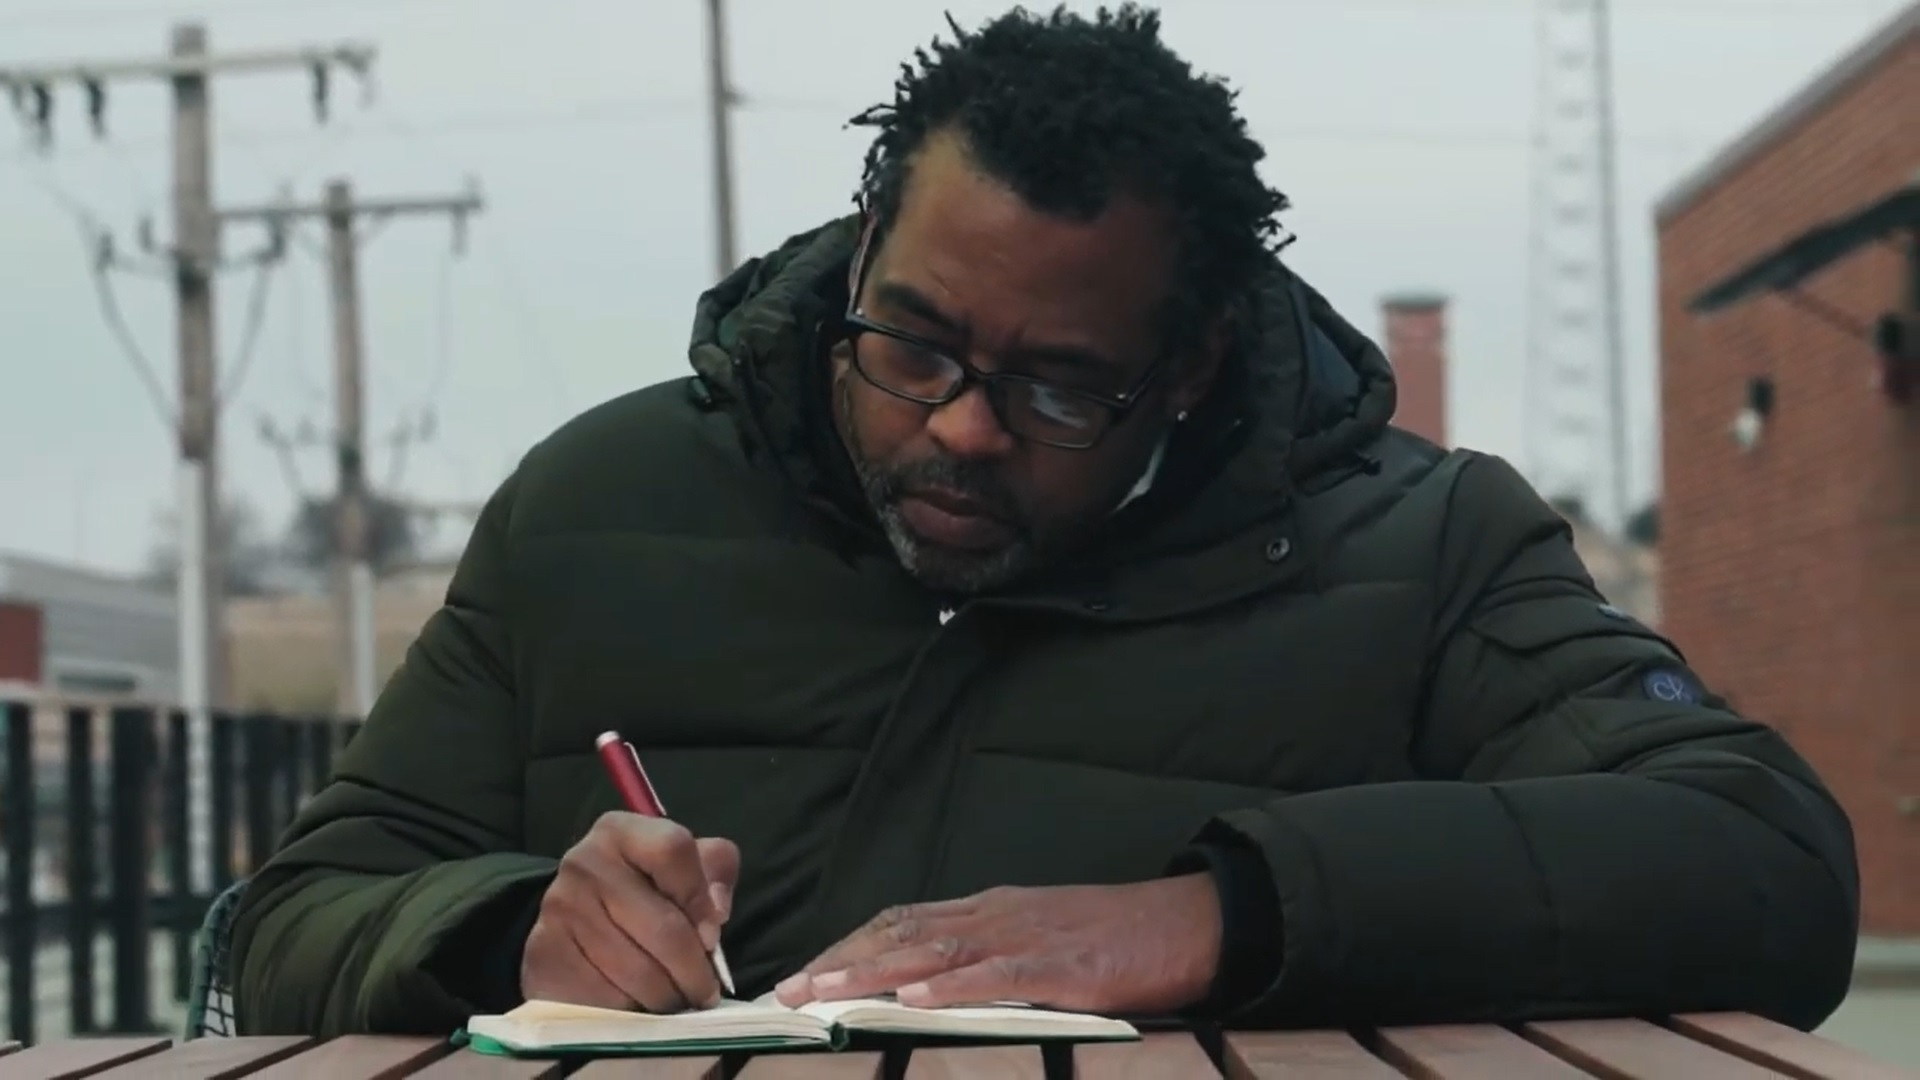 A person in a dark winter coat writes in a notebook on a rooftop during an overcast day